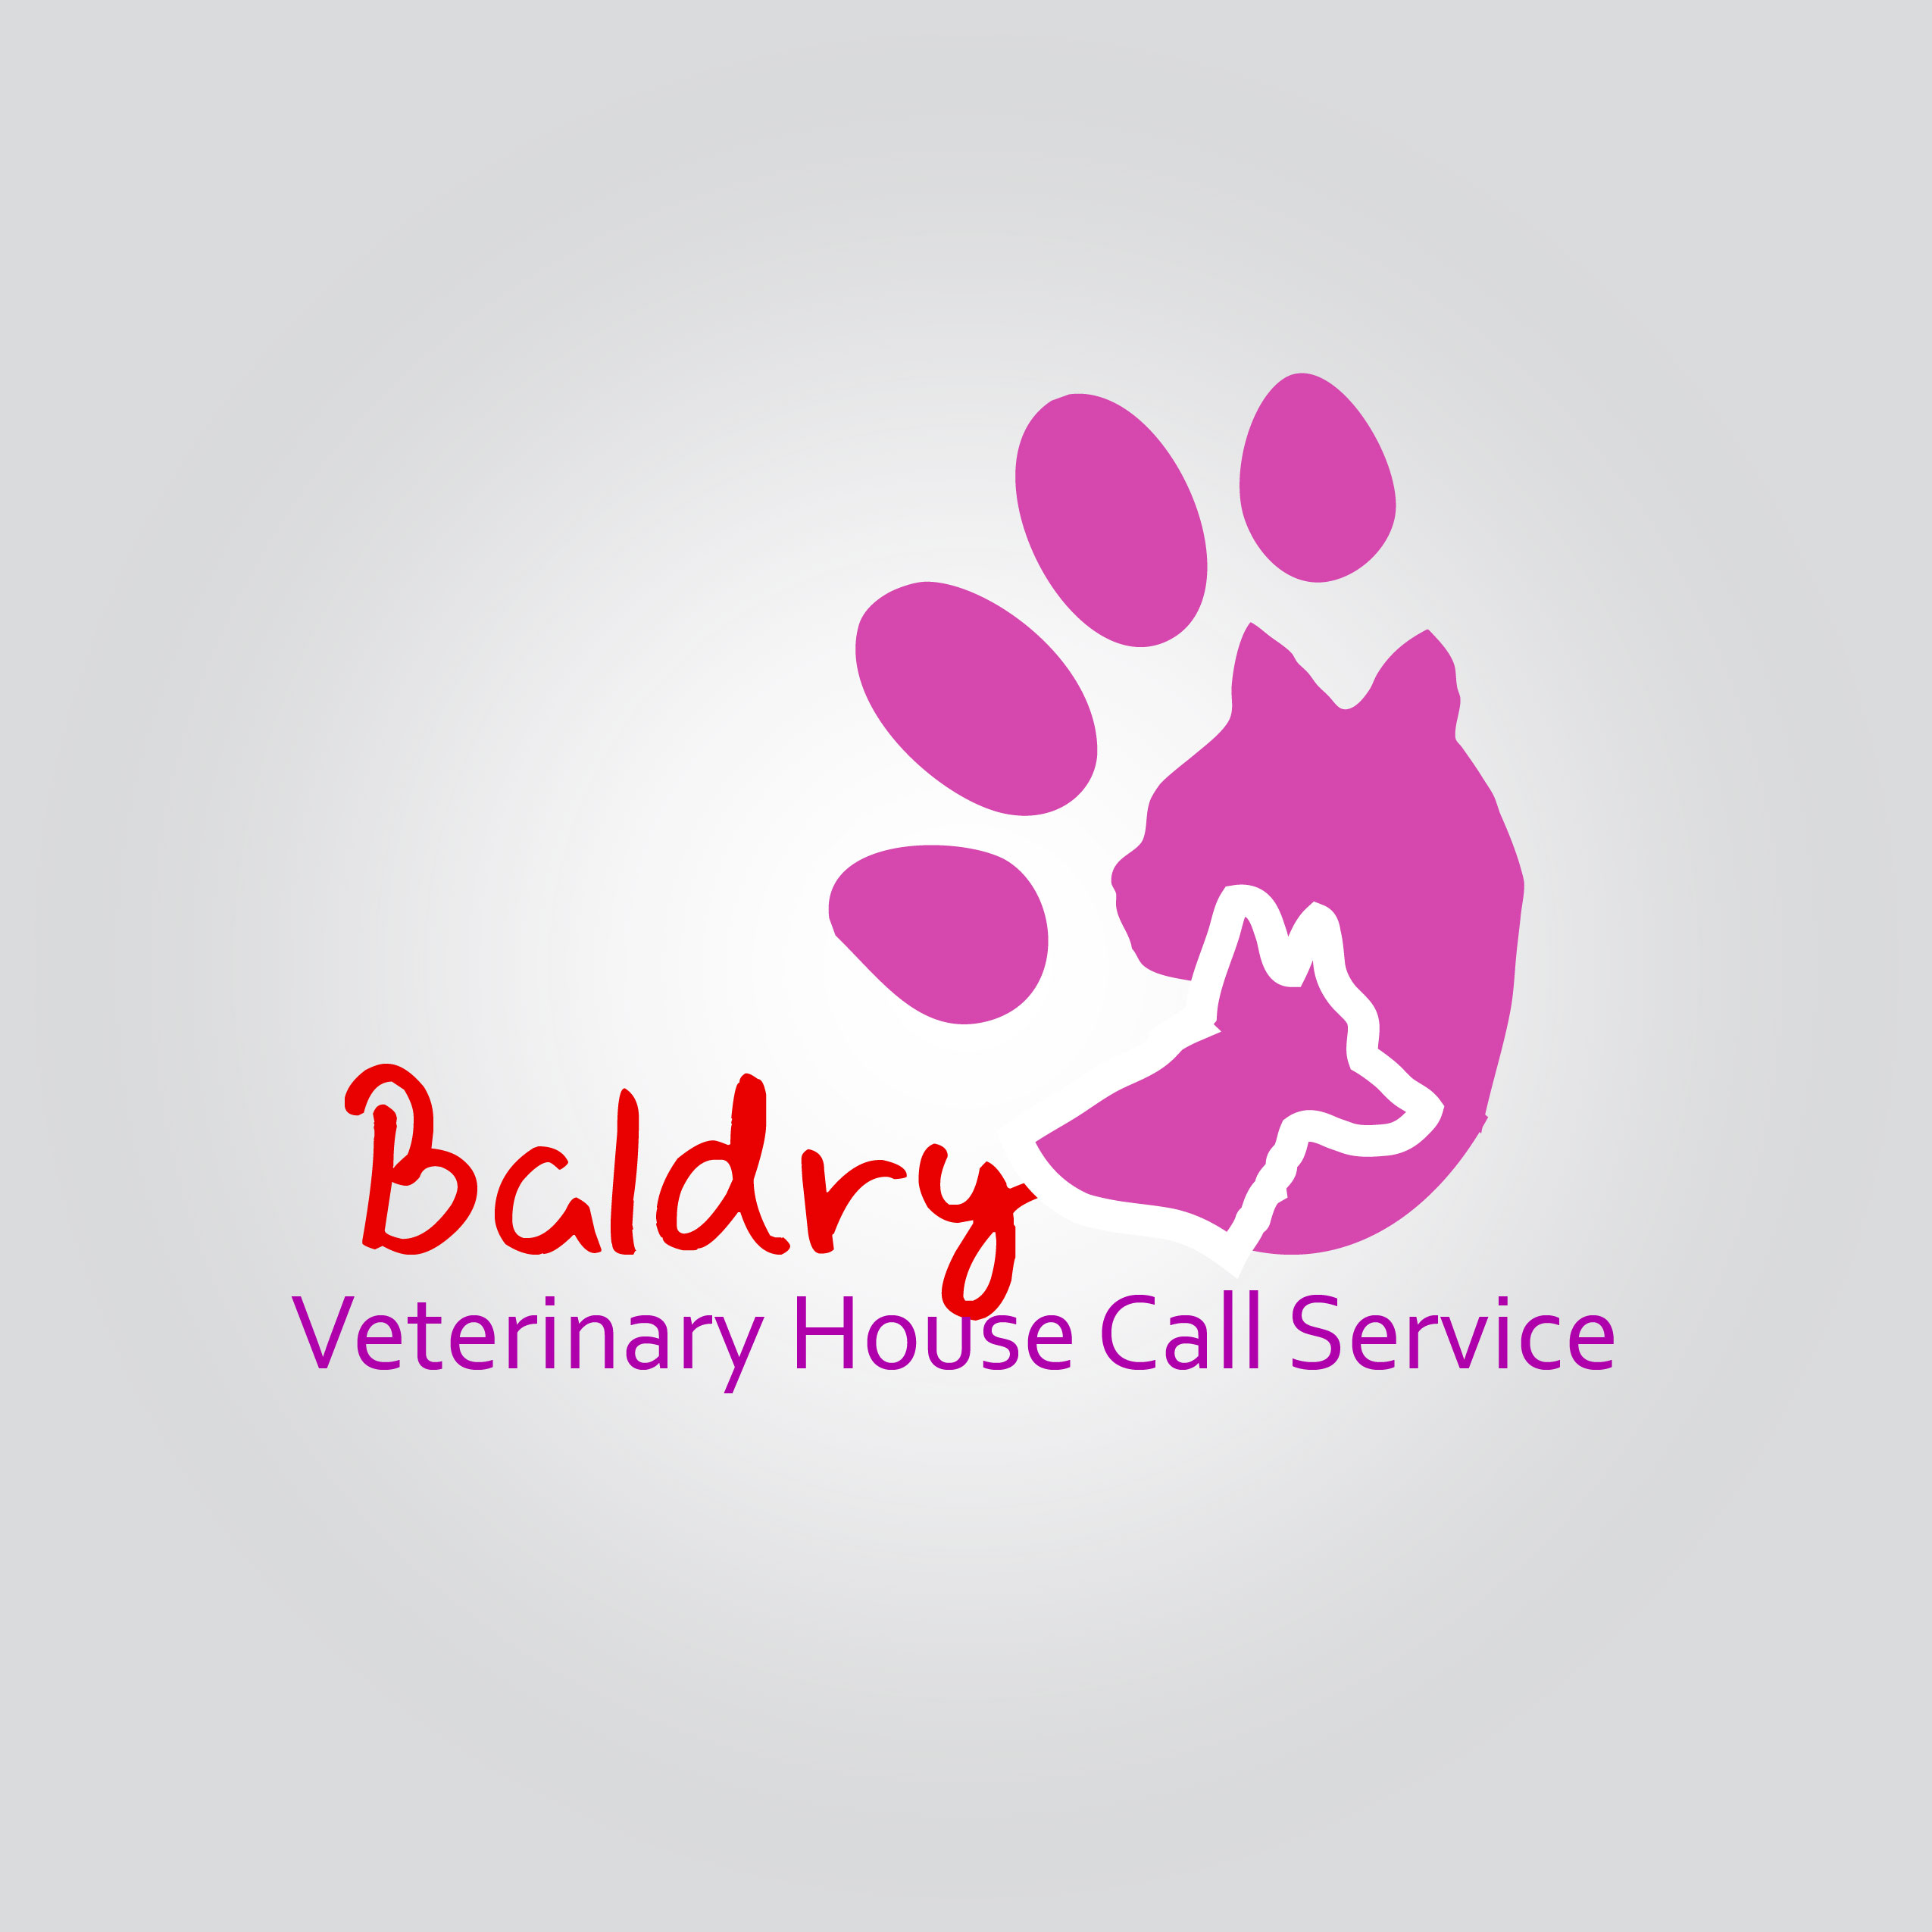 Logo Design by Joseph Neal Lacatan - Entry No. 41 in the Logo Design Contest Captivating Logo Design for Baldry Veterinary House Call Service.